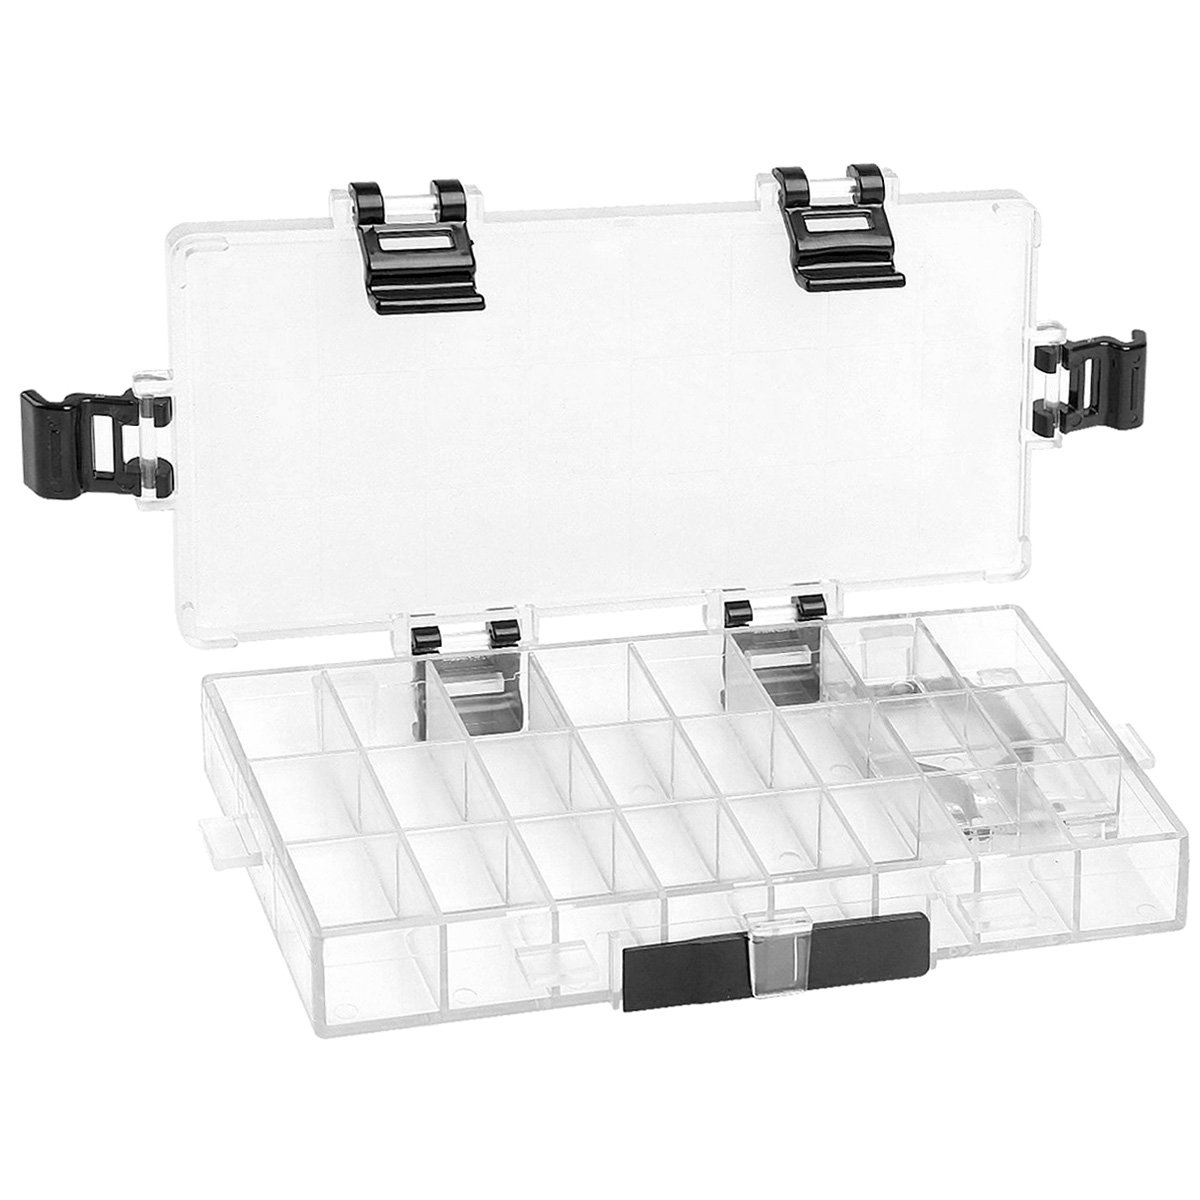 Transon Watercolor Palette Box Airtight 24 Deep Wells for Watercolor,Gouache,Acrylic and Oil Paint